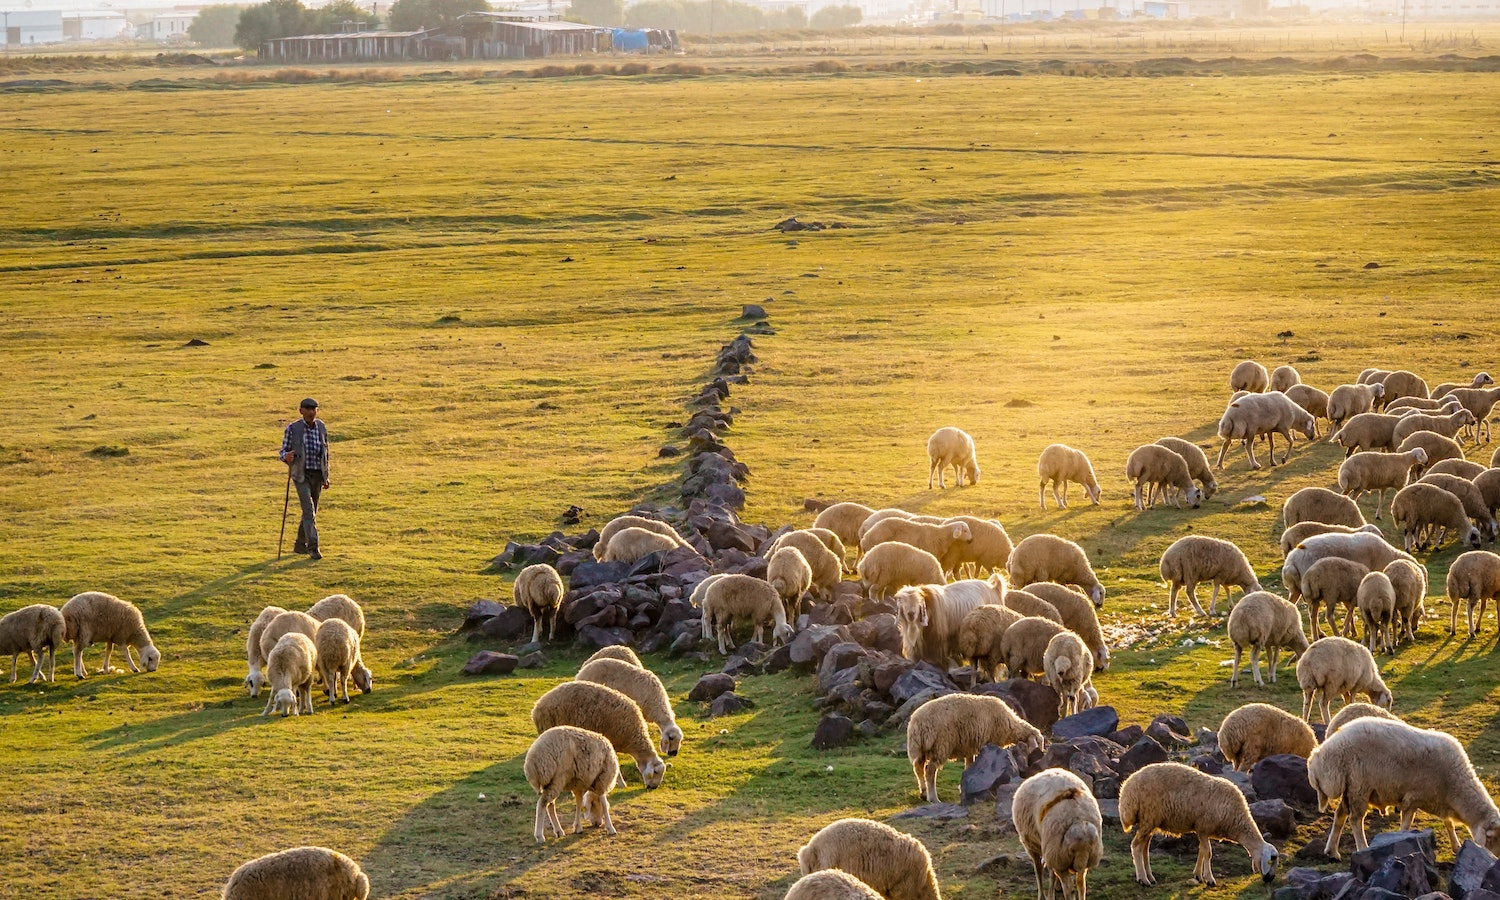 According to EU Agriculture Commissioner Janusz Wojciechowski, the pandemic underscores the critical need for a more sustainable, self-reliant European food system, which the new F2F Strategy is designed to achieve.